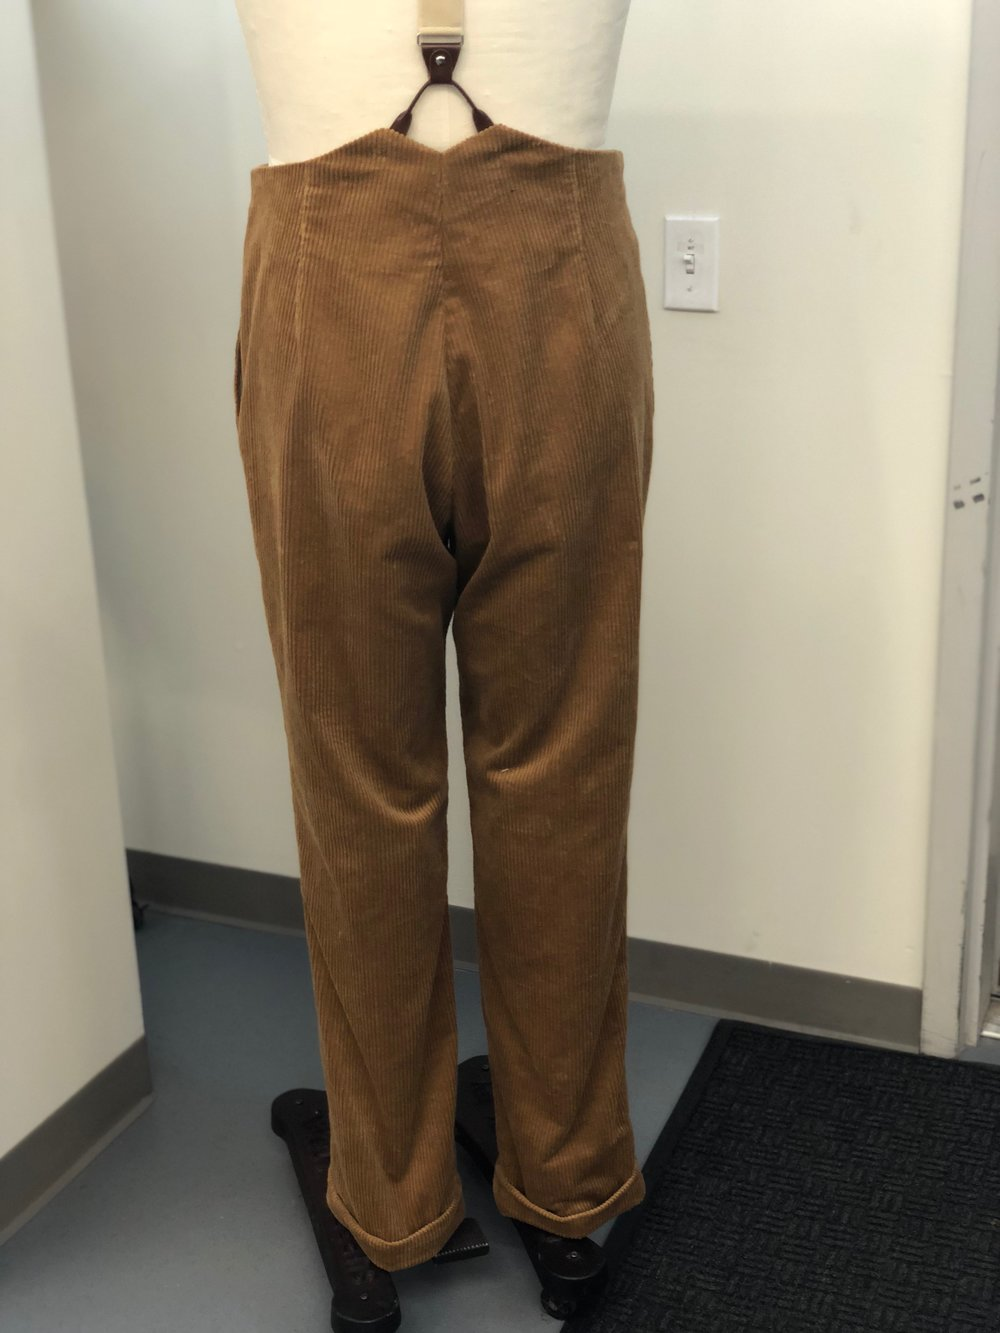 Wigmaster's pants